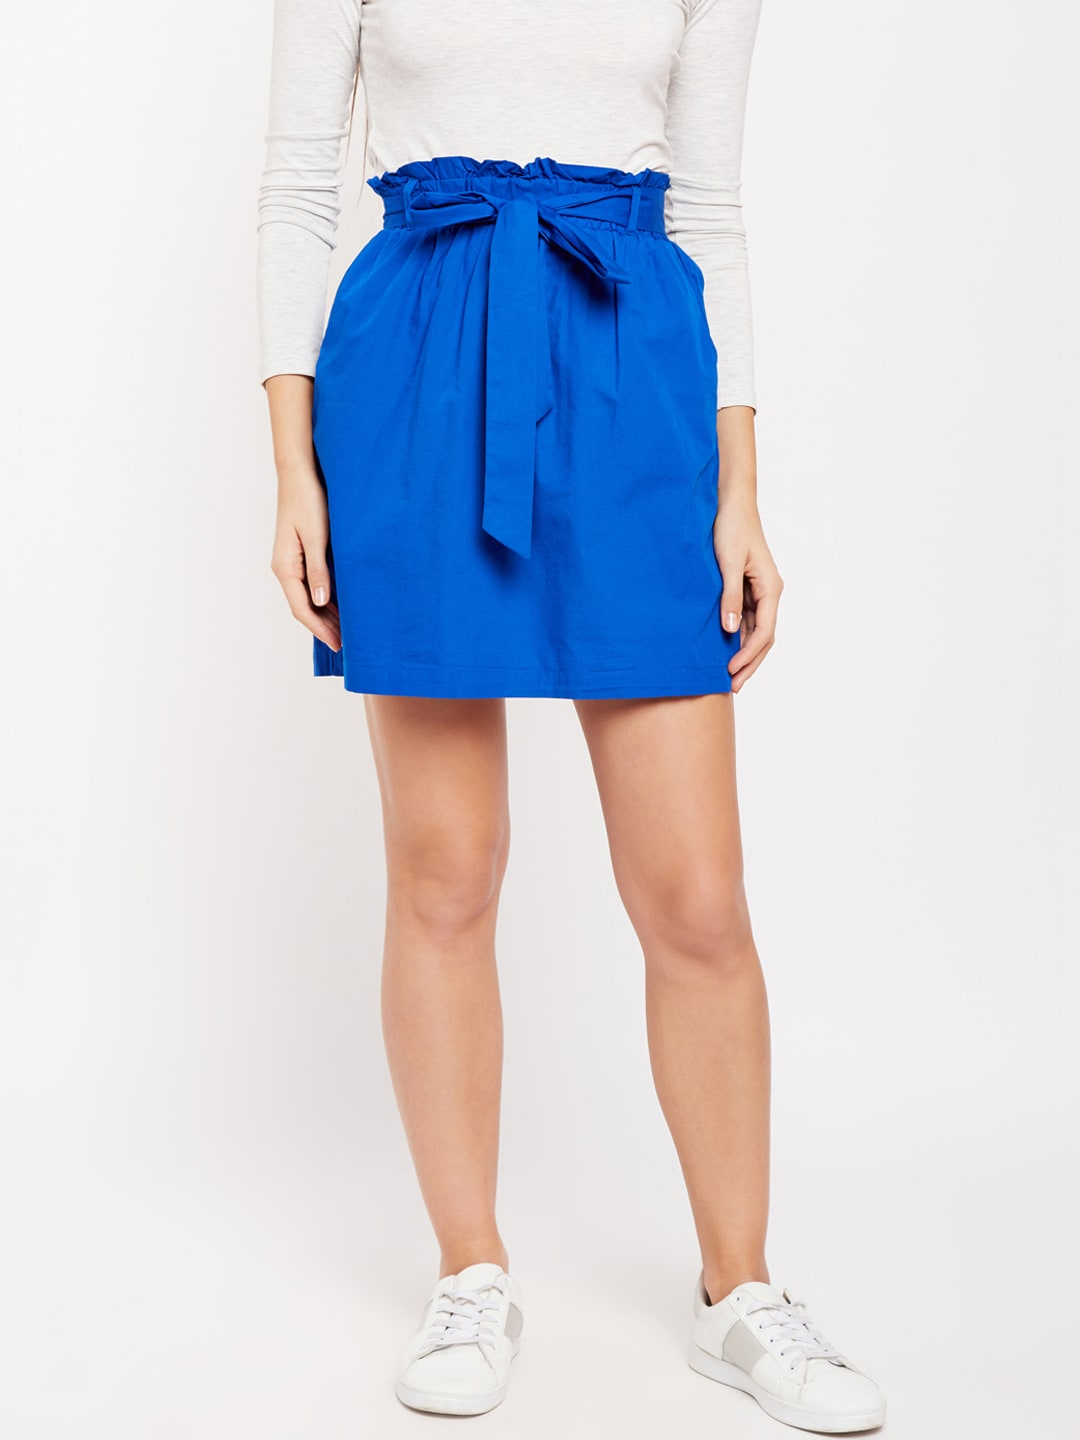 Buy Oxolloxo Blue Solid Frill Skirt - Skirts for Women